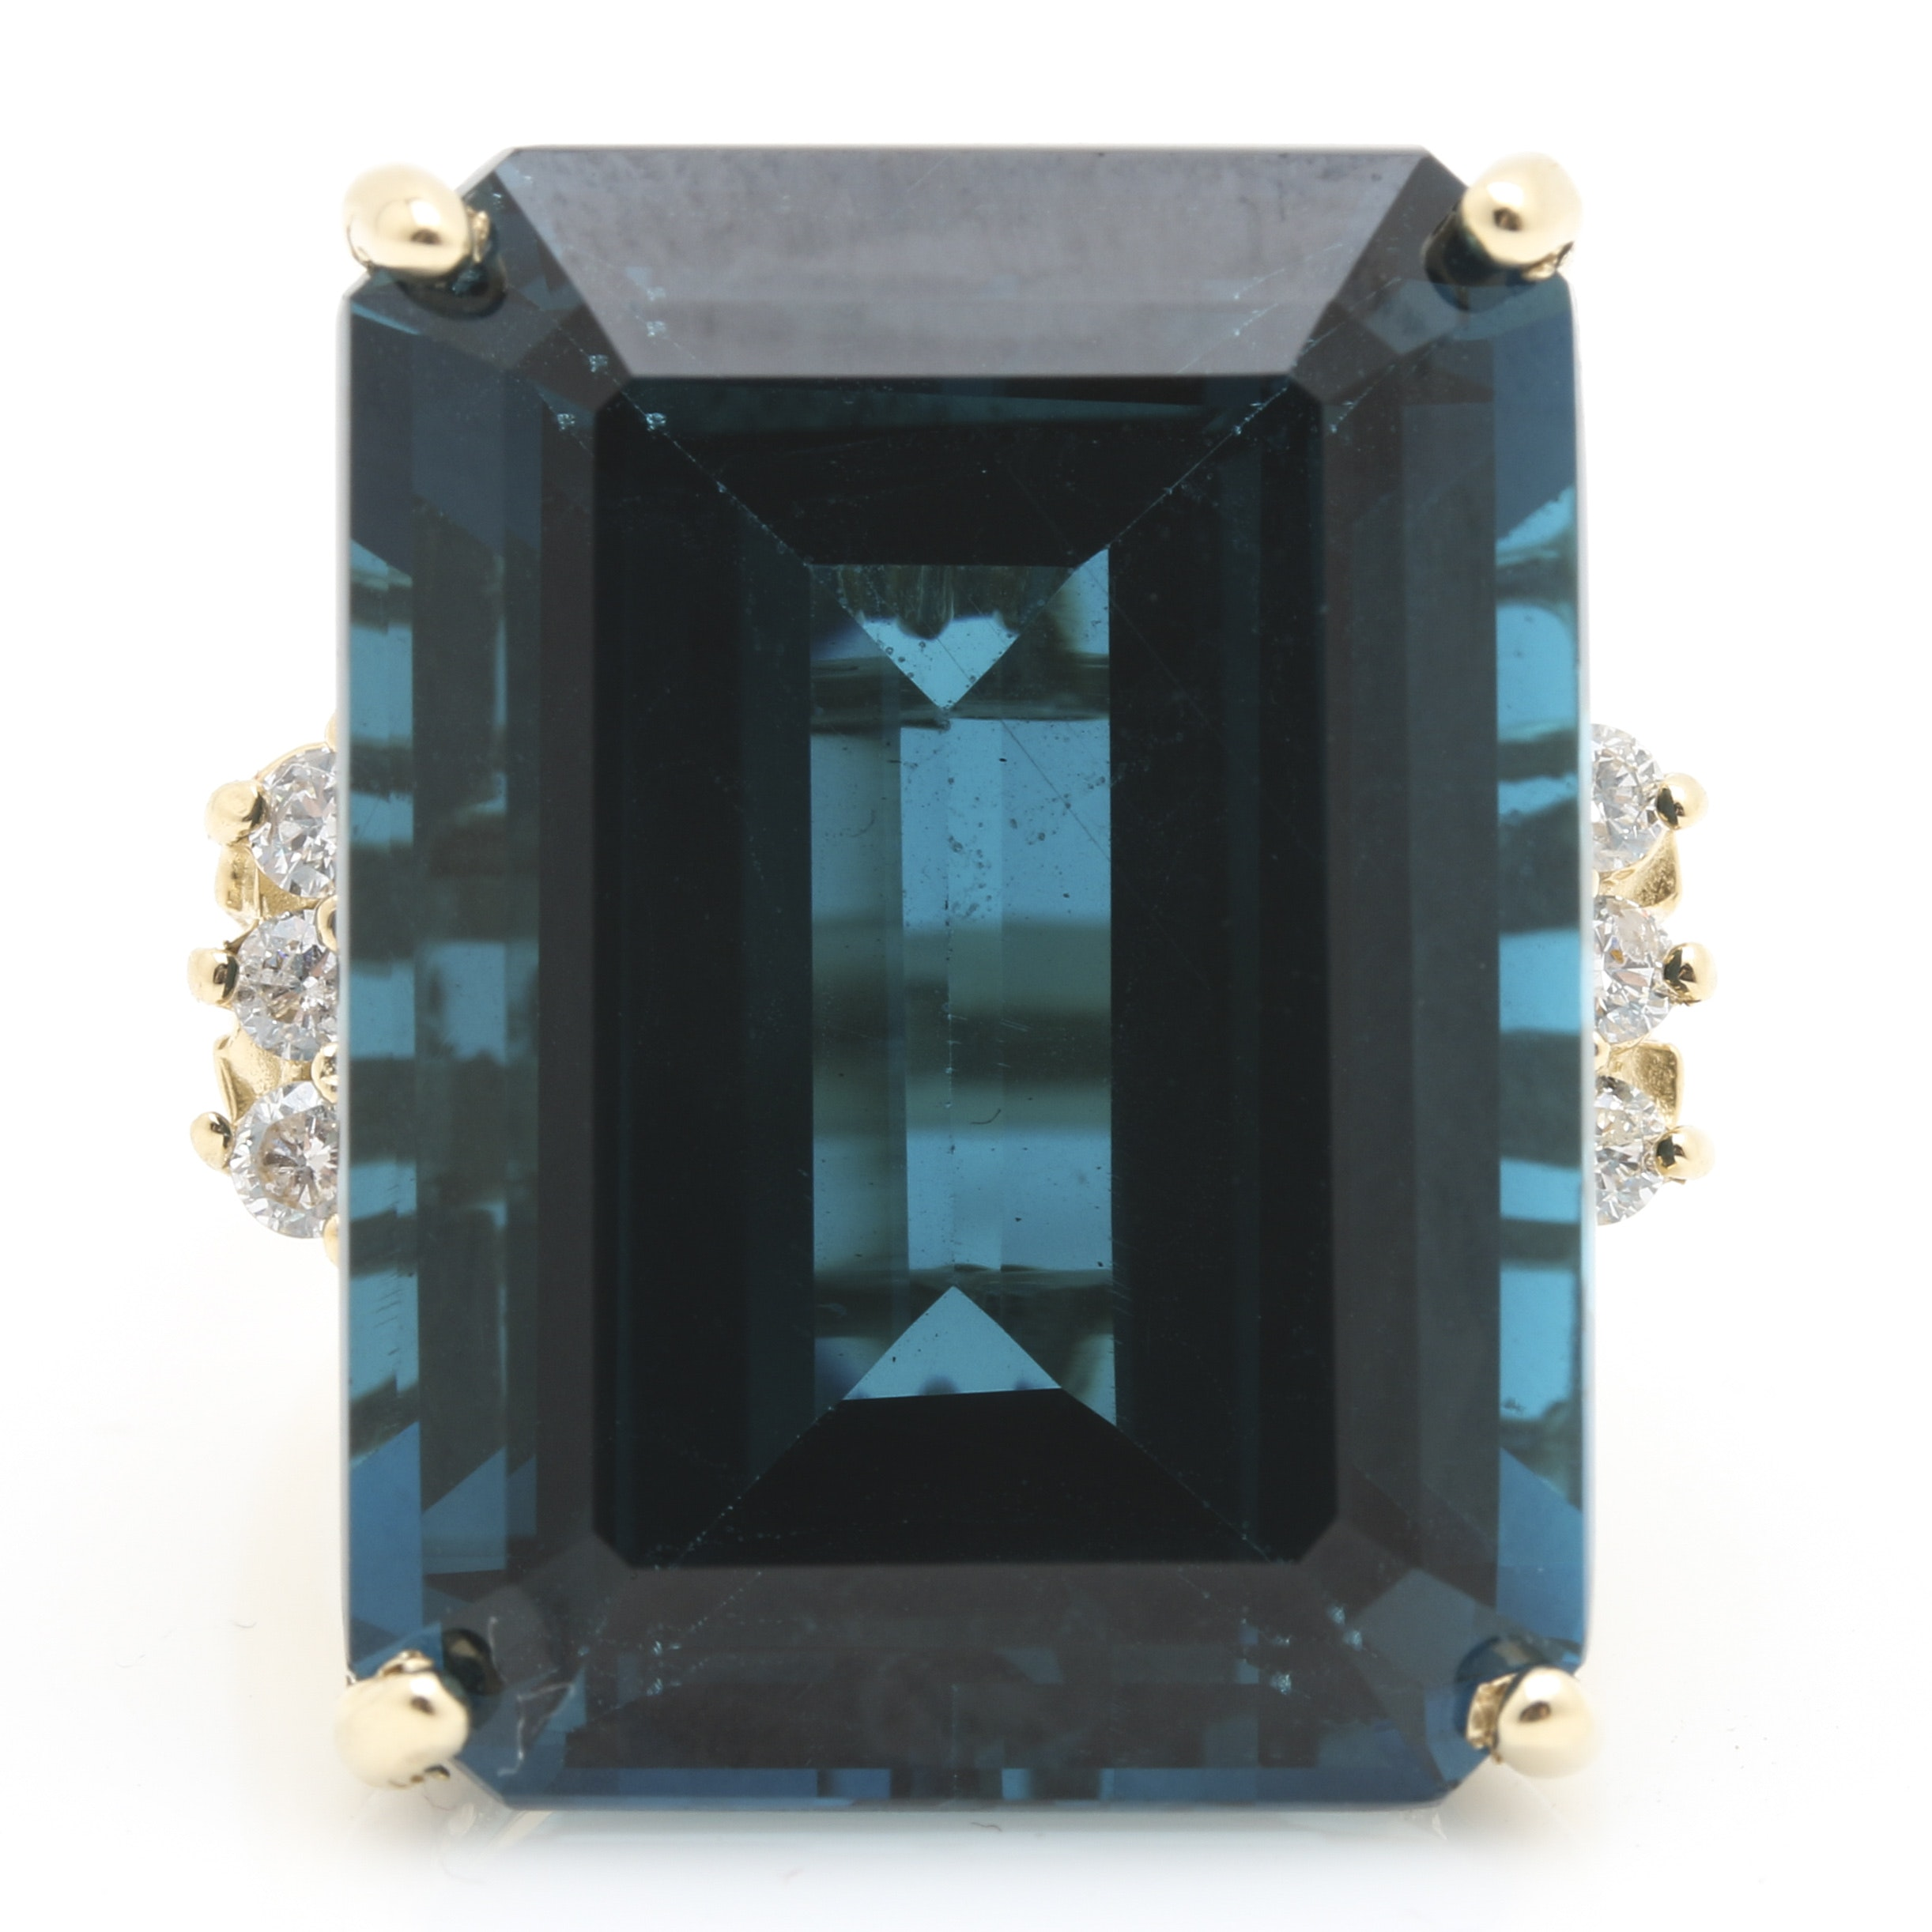 14K Yellow Gold 35.07 CTS London Blue Topaz and Diamond Statement Ring